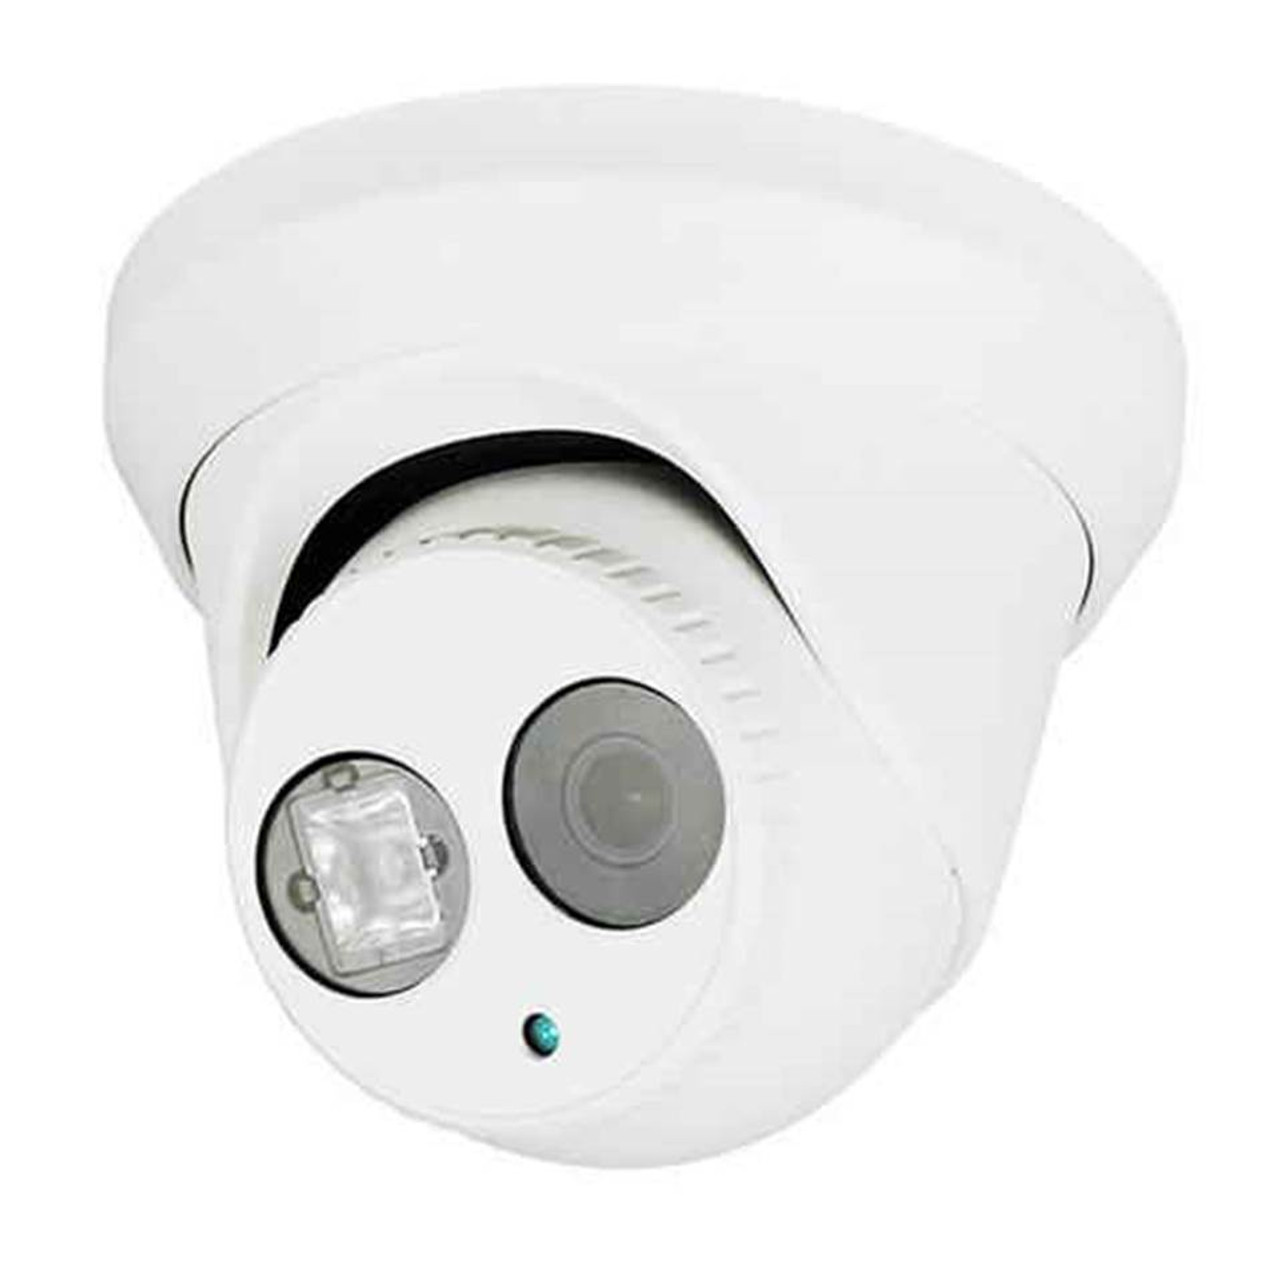 LT SECURITY CMIP3022W IP CAMERA WINDOWS XP DRIVER